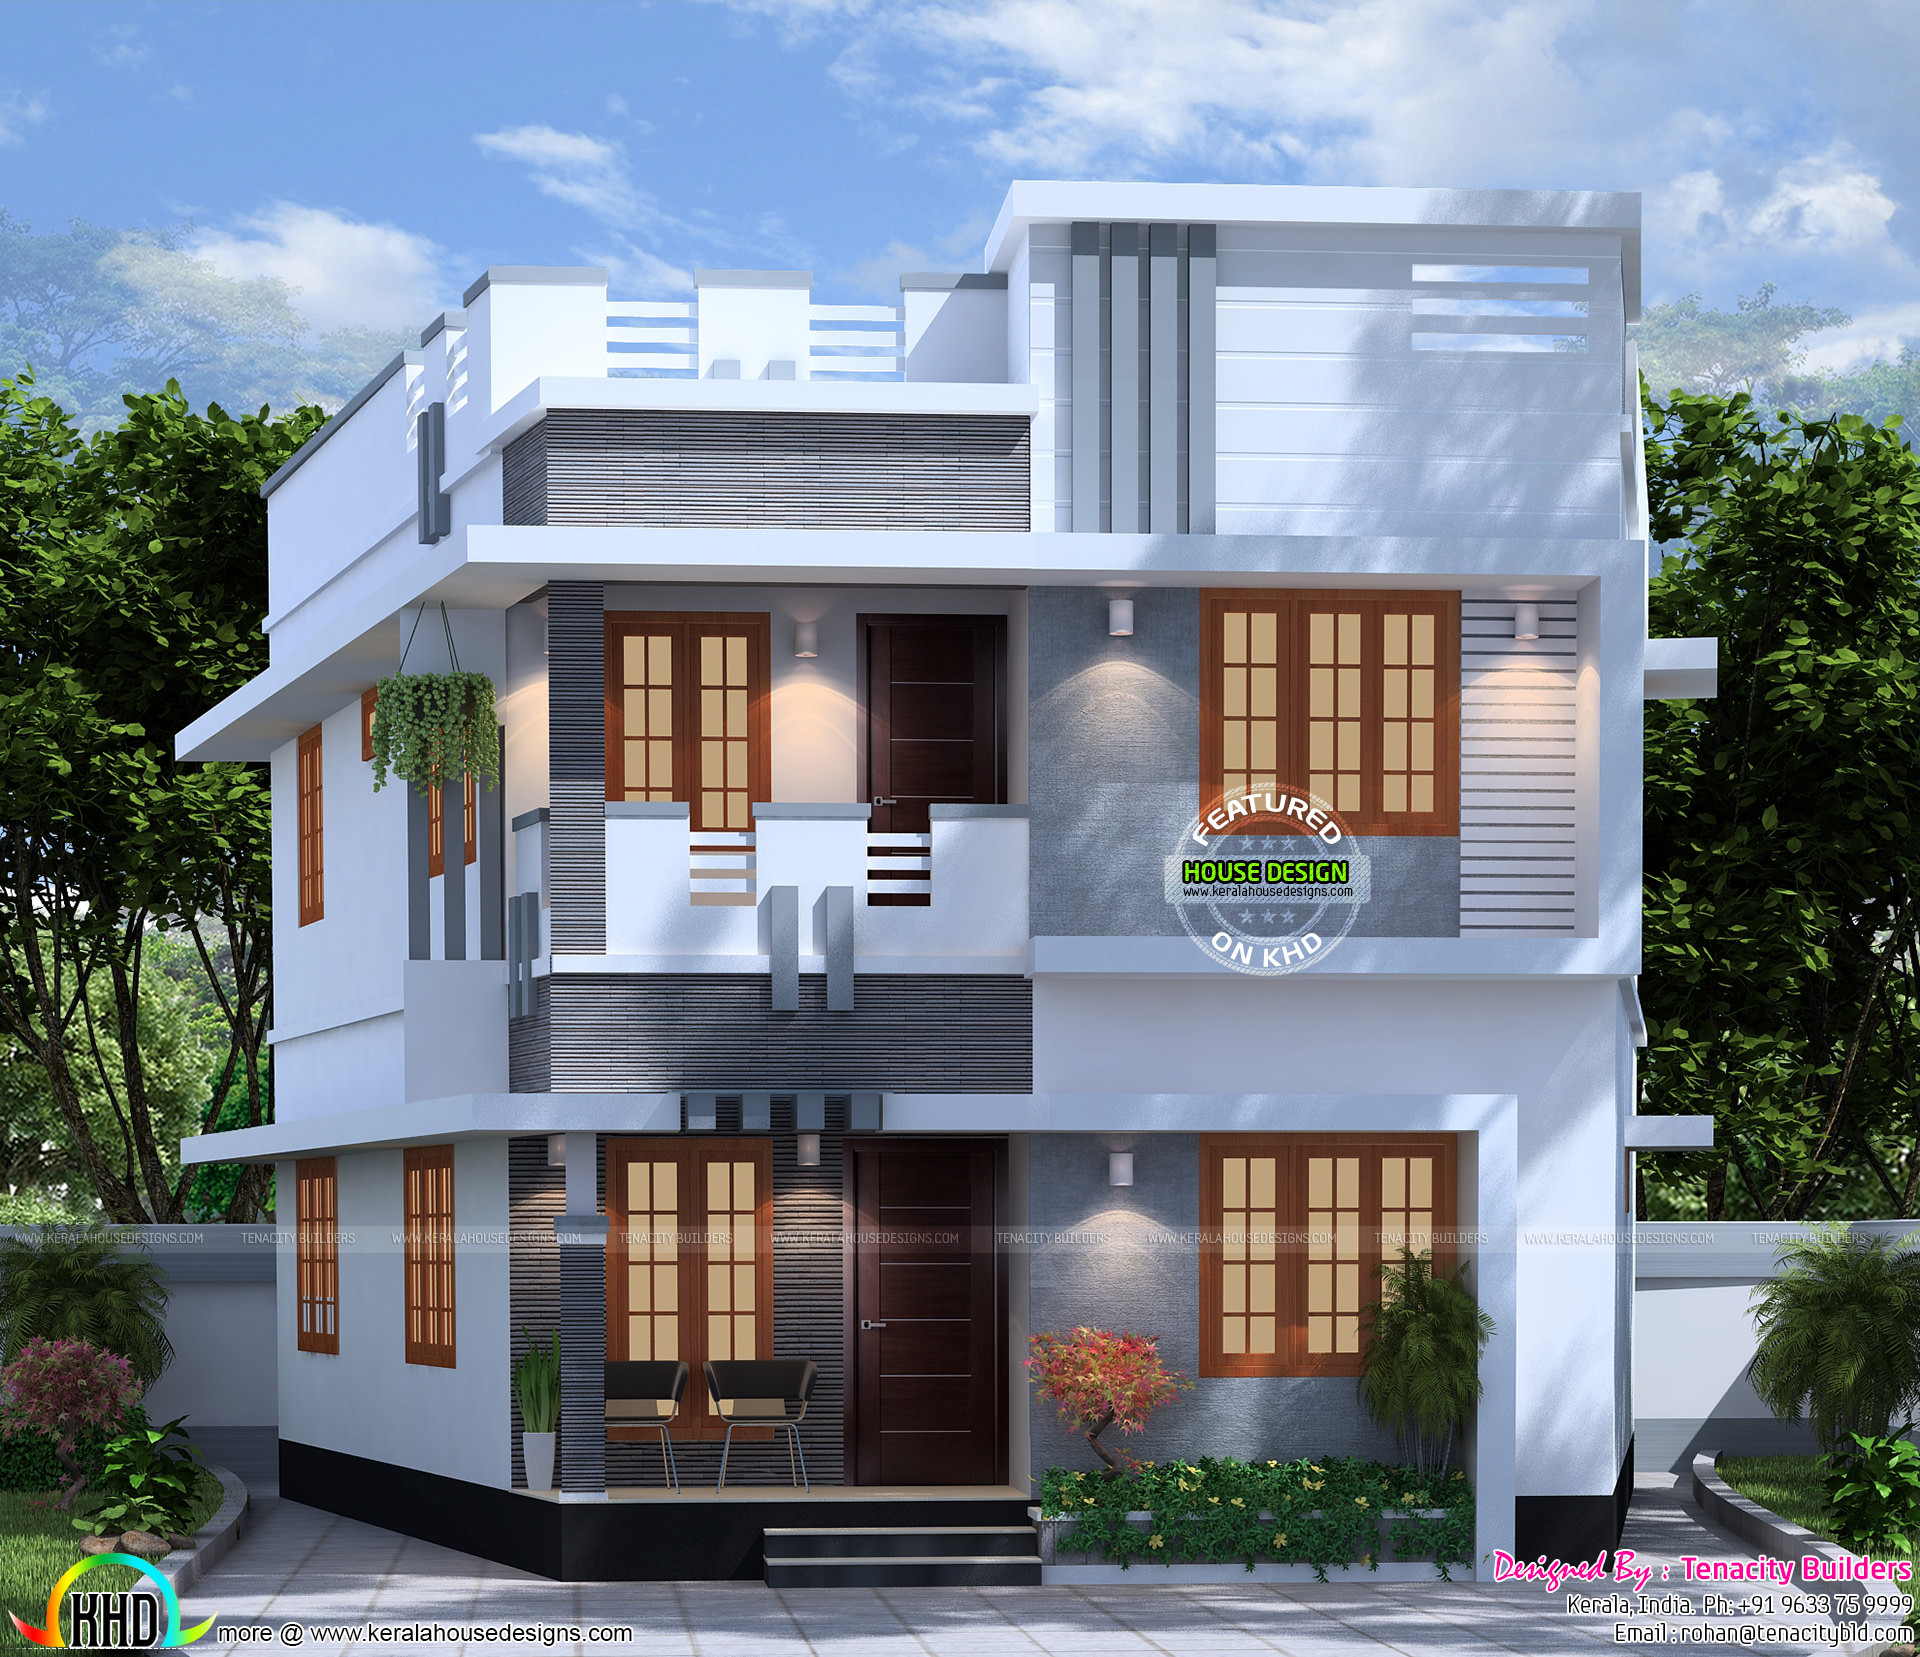 1300 square feet 4 bedroom house plan kerala home for Home designs 2017 kerala